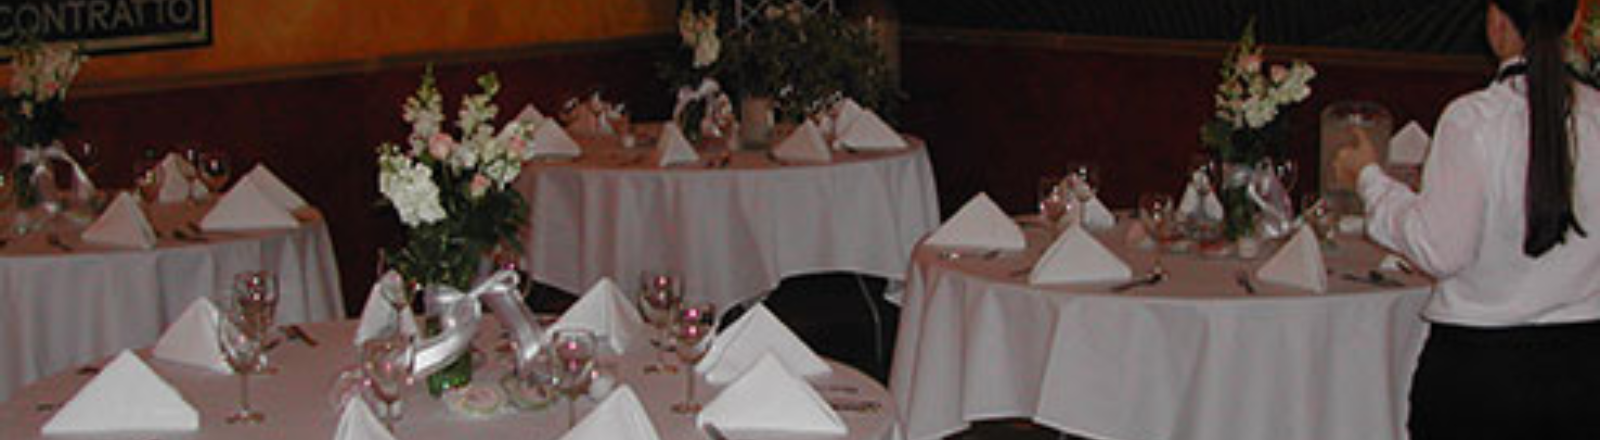 Tables set with white linens and flower bouquets on each in the private event room at Canby's St. Josef's Vineyard and Winery